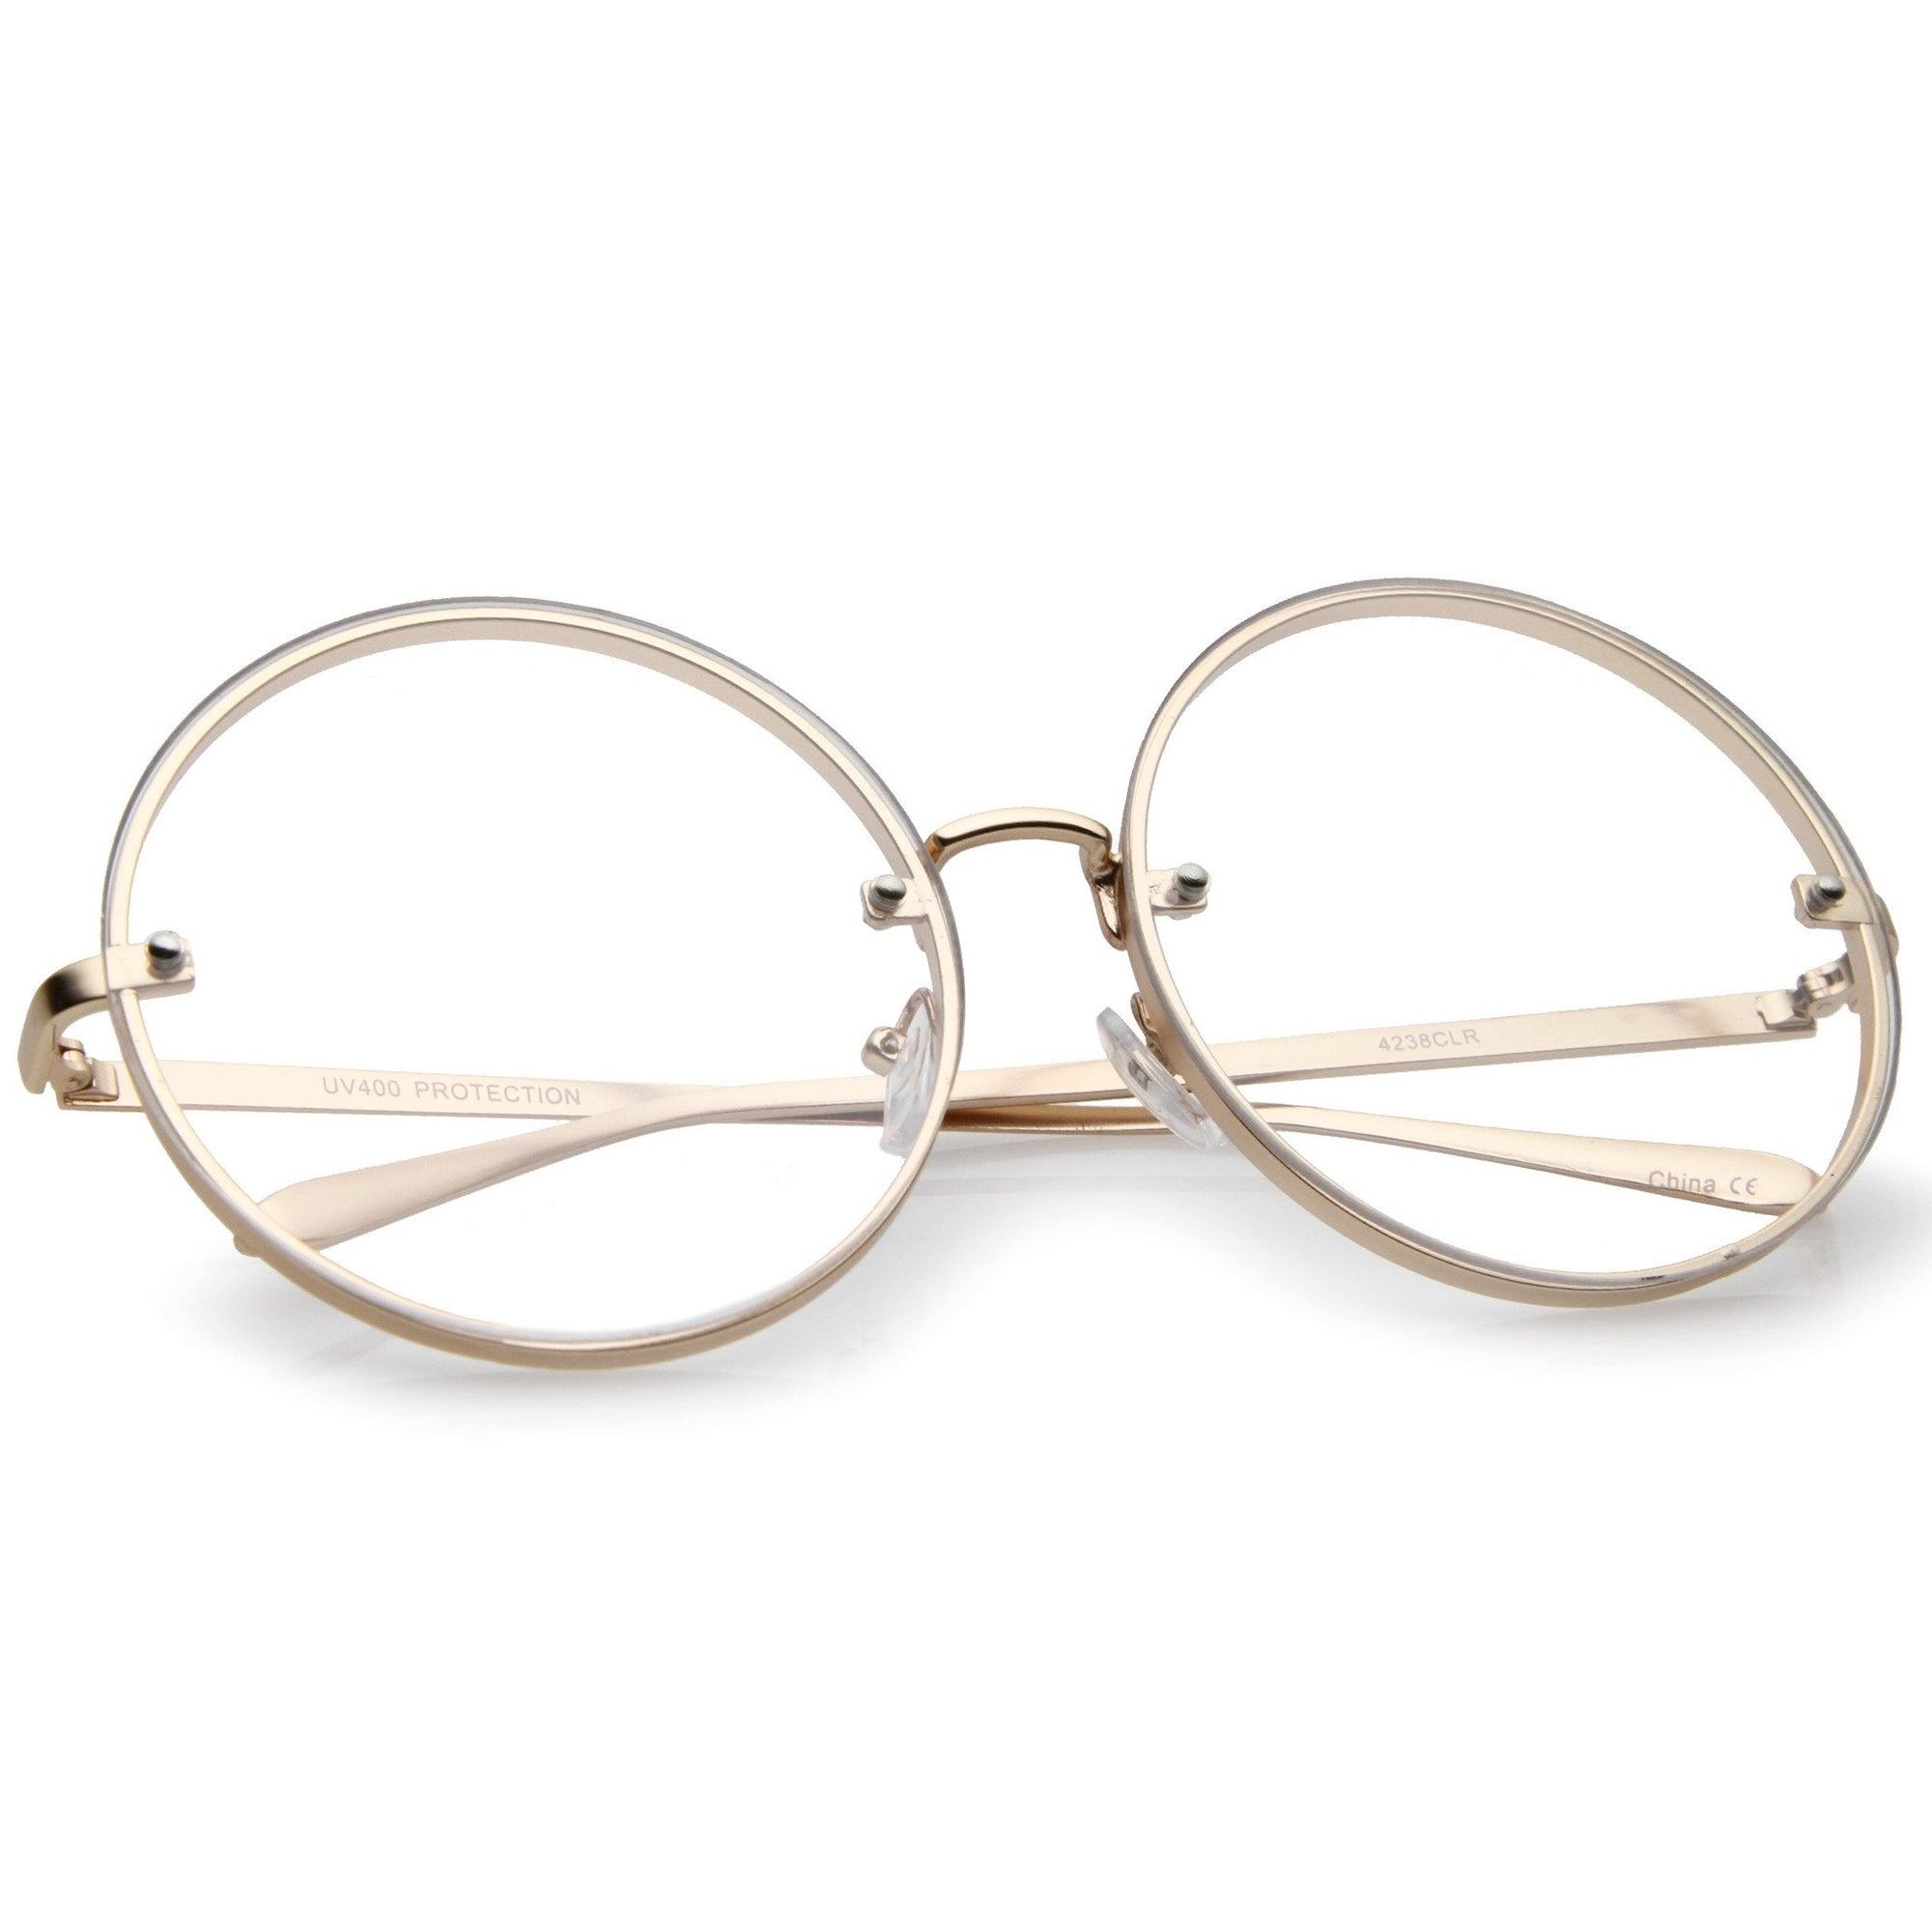 ab4a7219a028 ... Modern Oversize Infinity Round Clear Lens Glasses A896 · Gold Clear ·  Gold Clear · Gold Clear · Gold Clear